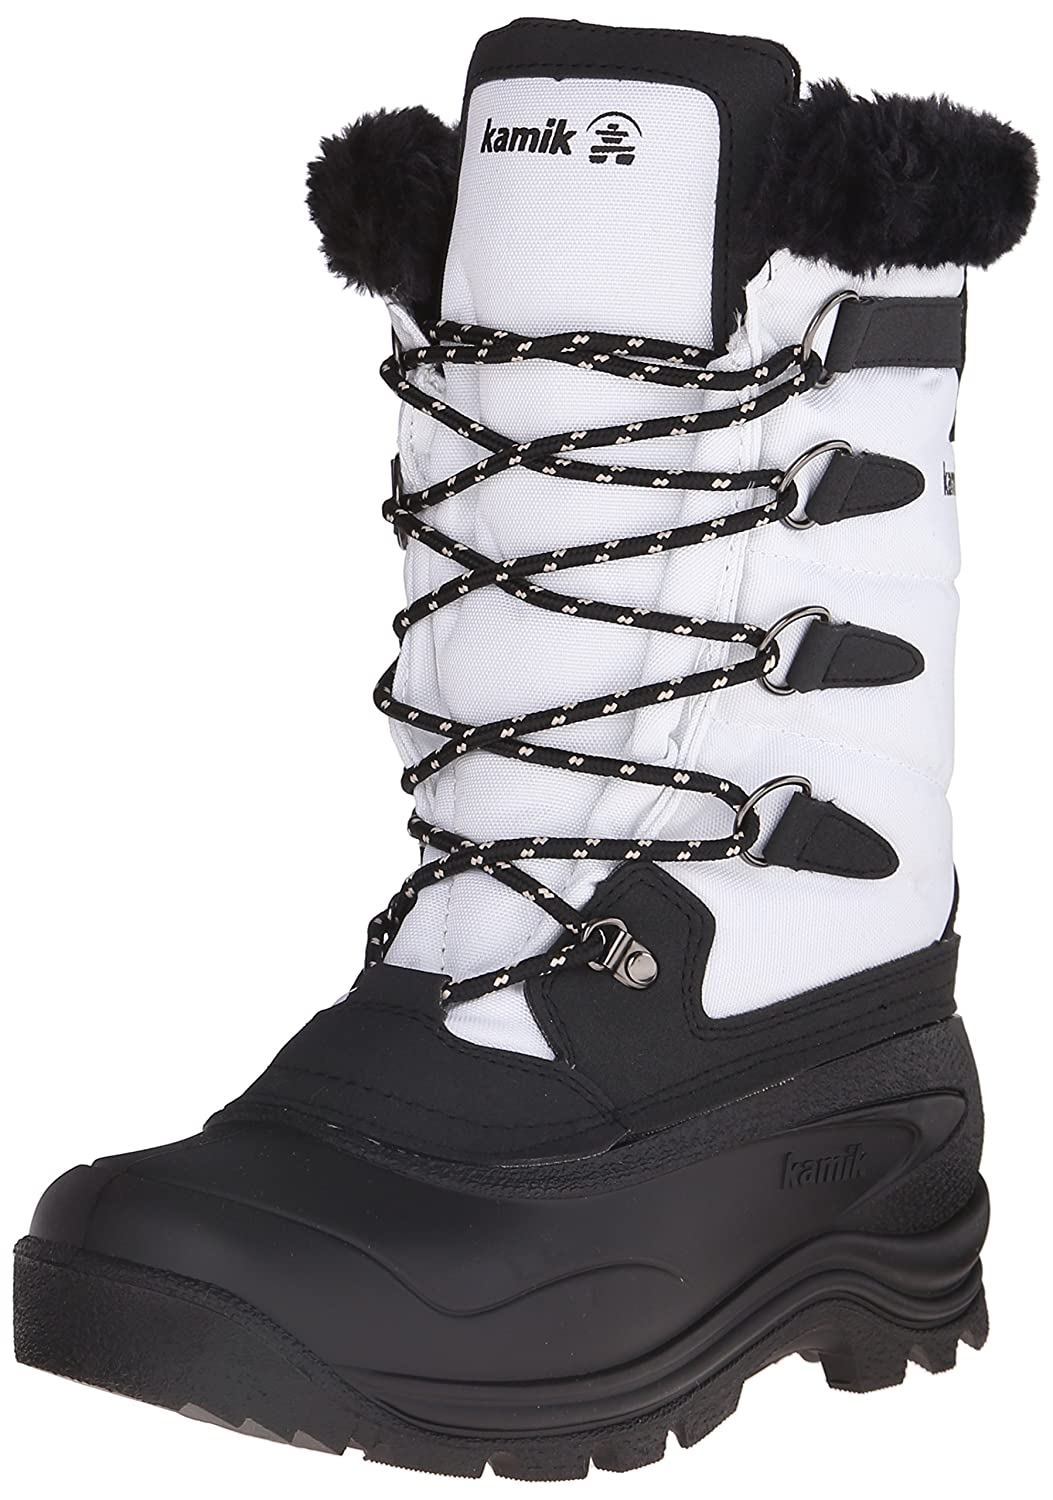 Kamik Women's Shellback Insulated Winter Boot B00RW5LH8U 10 B(M) US|White